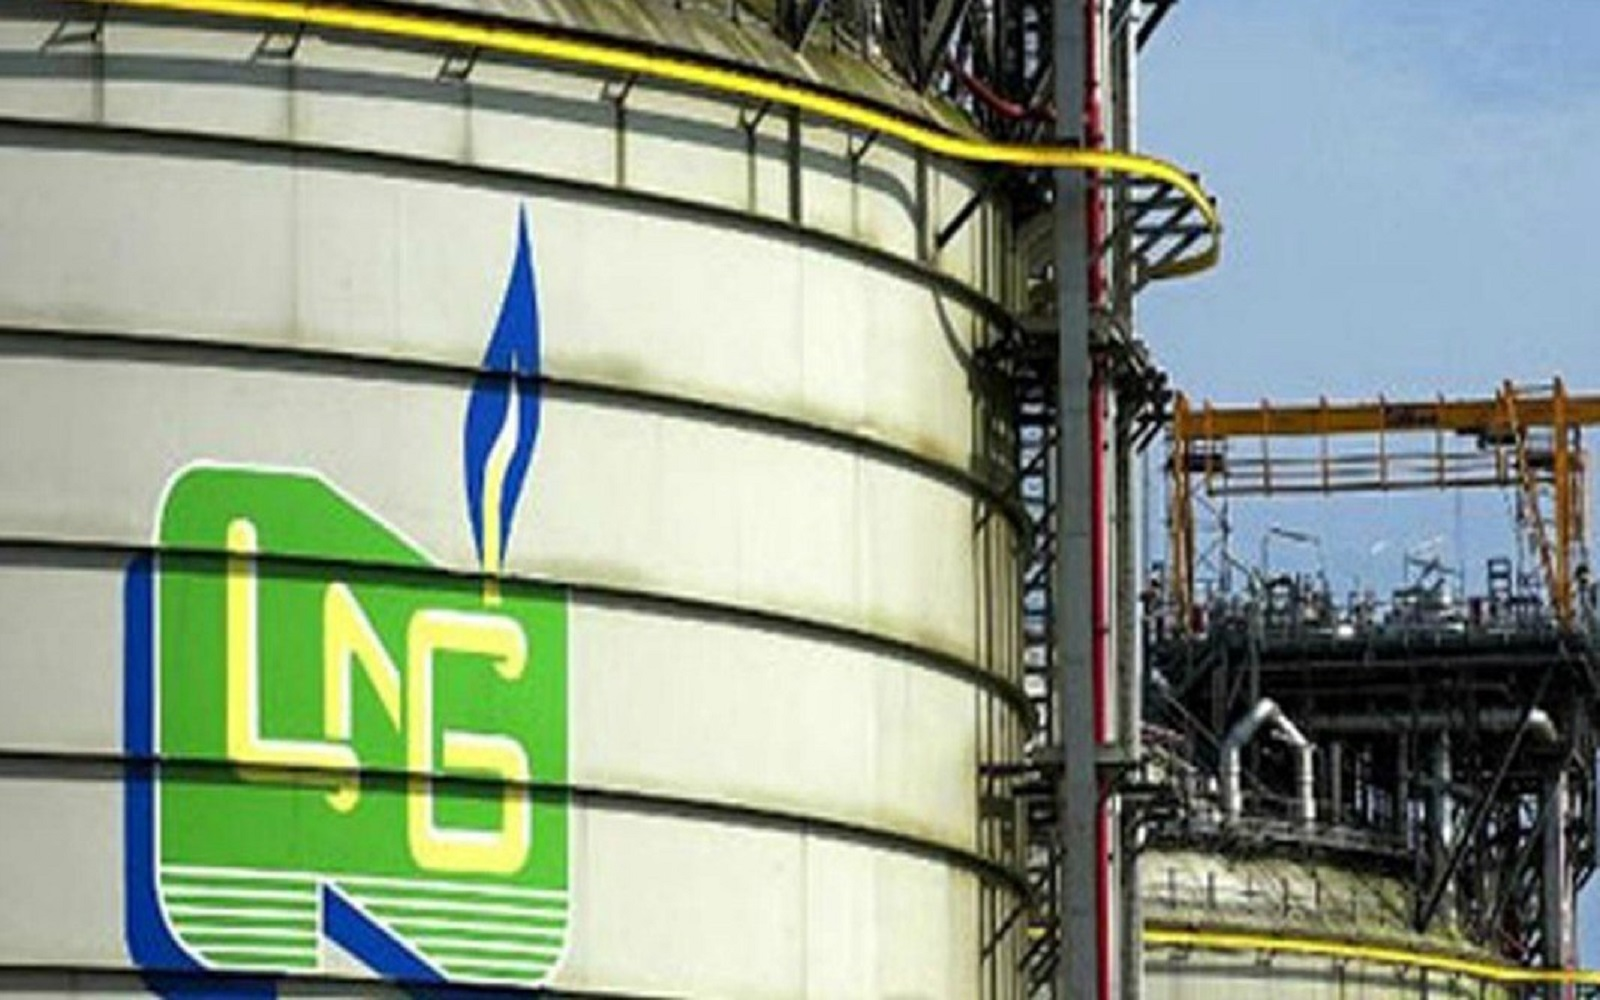 NLNG signs $7bn train 7 contracts with Saipem, Chiyoda, Daewoo